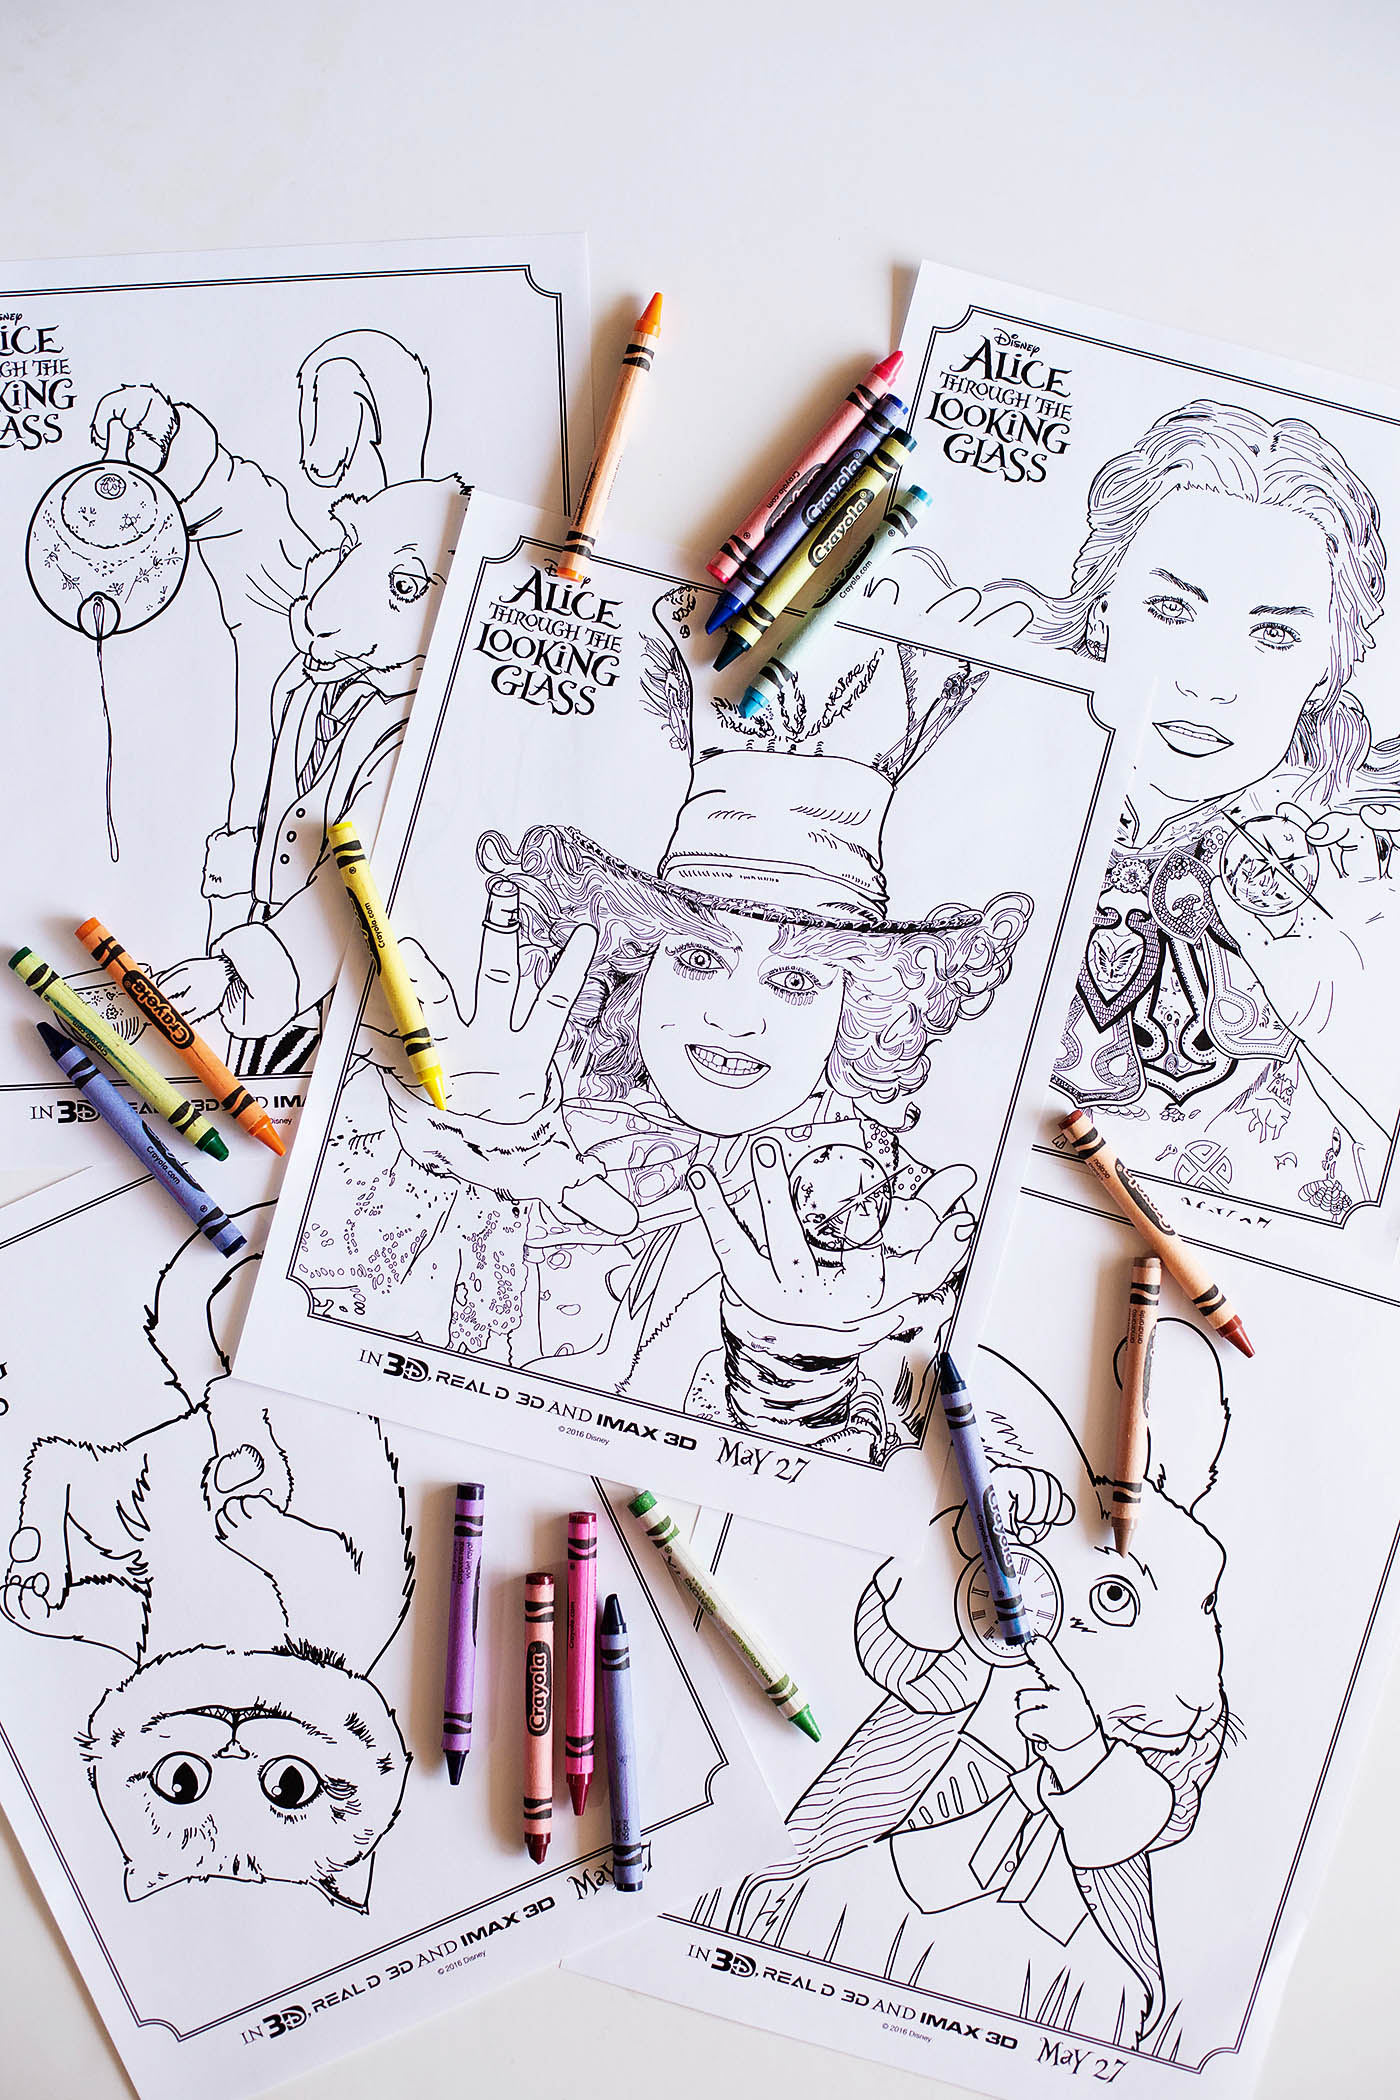 Disney's Alice Through the Looking Glass printable activities including a maze, find the difference, coloring pages, a giant floor puzzle and bookmarks!